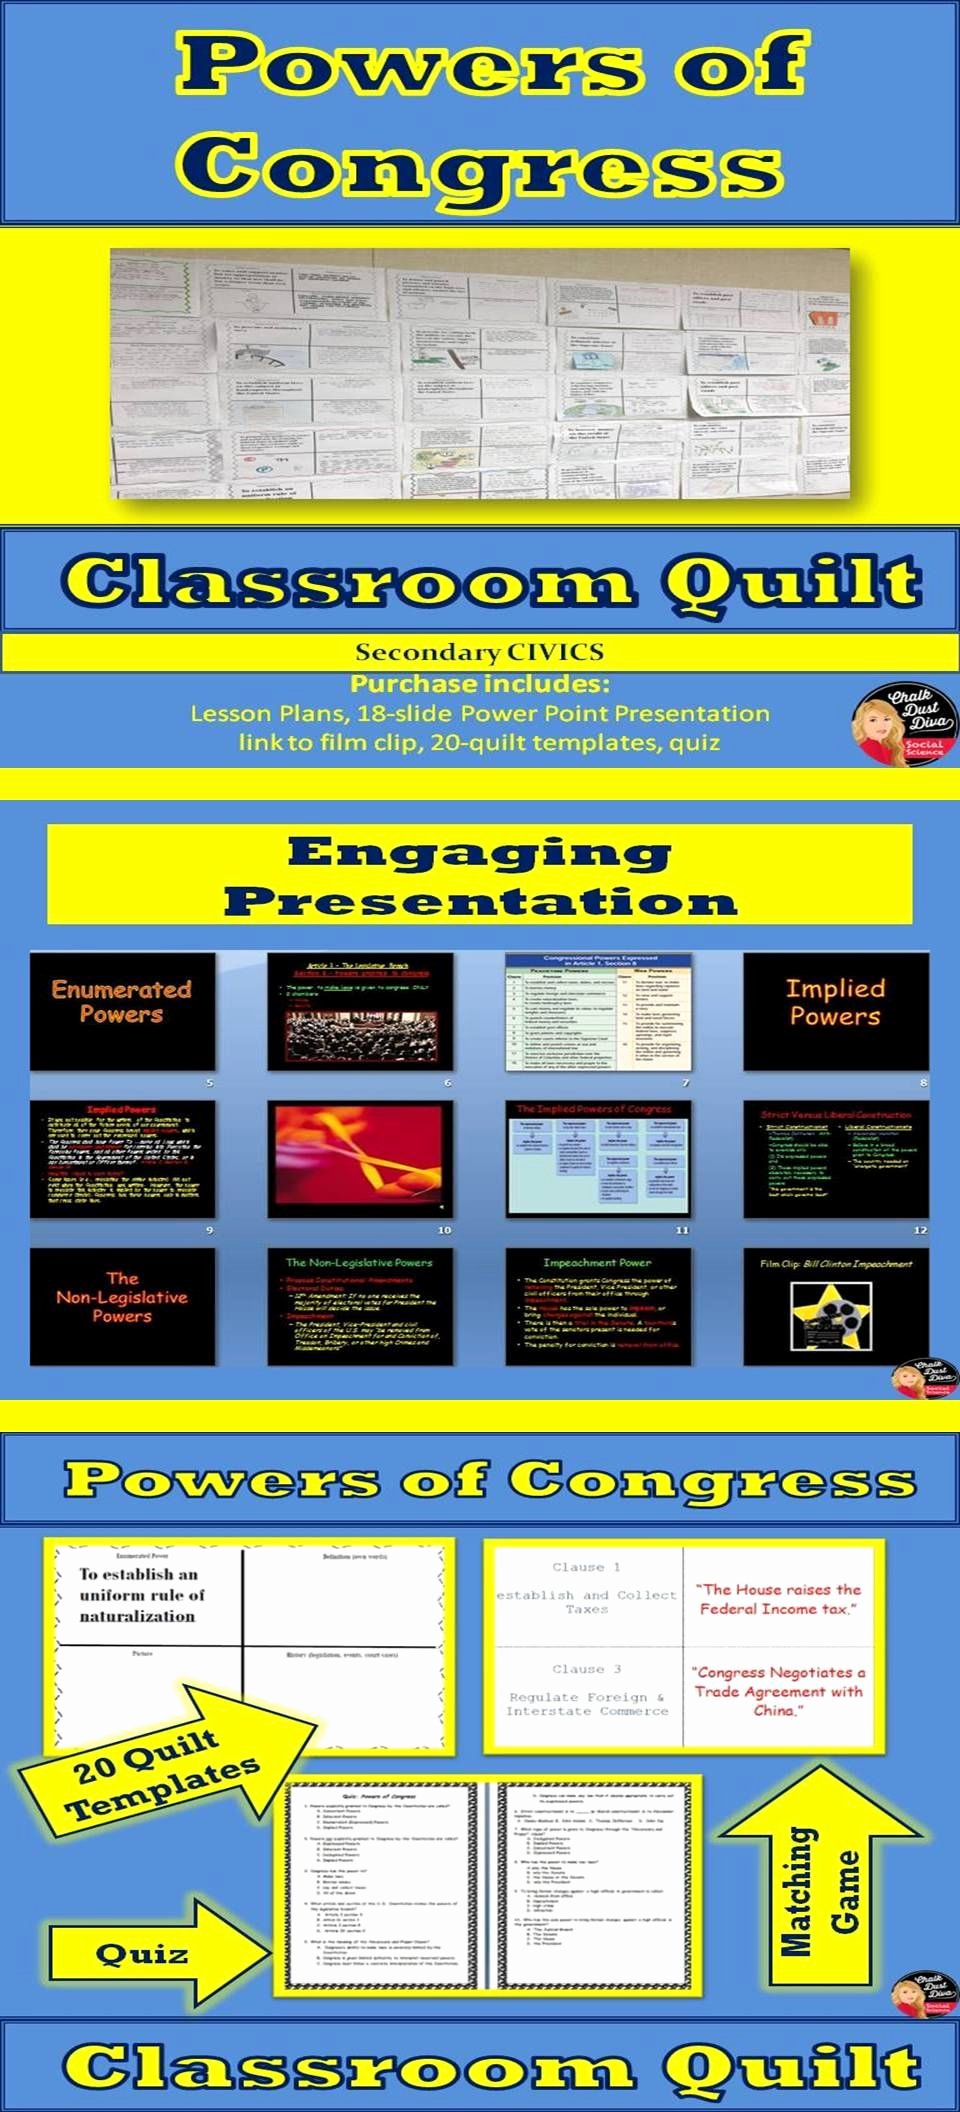 Powers Of Congress Worksheet Lovely Powers Of Congress Classroom Quilt Activity Legislative